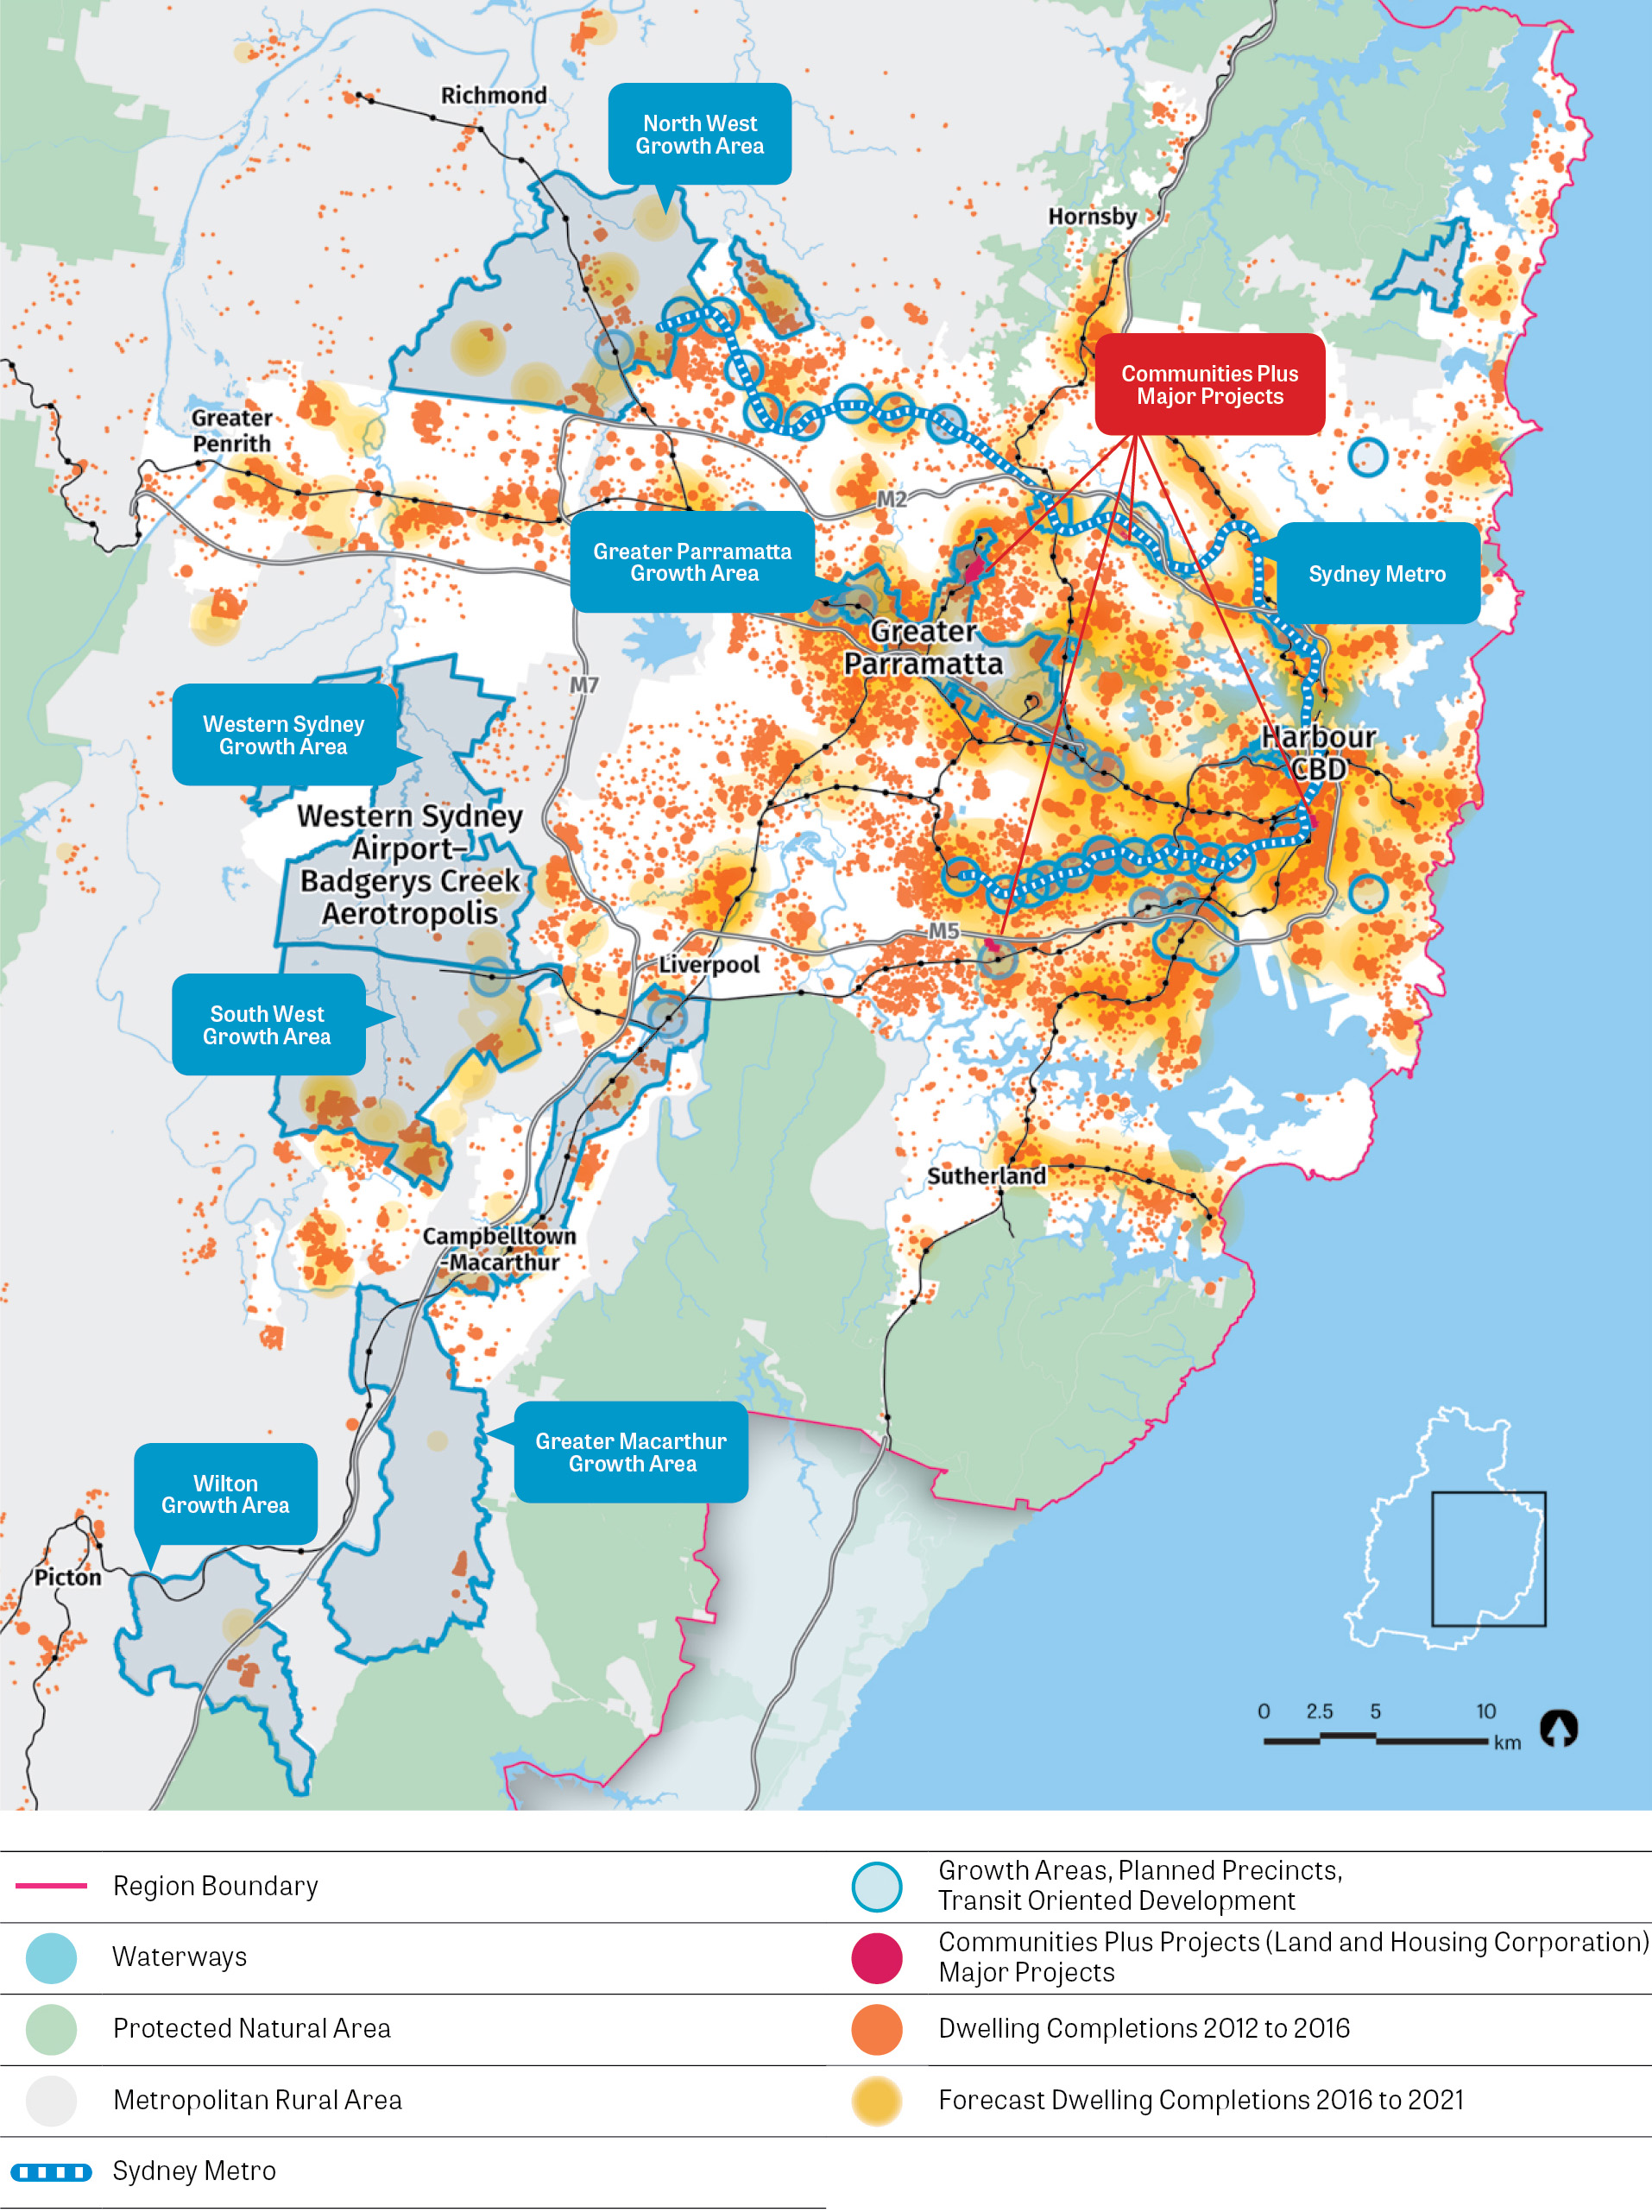 Map of historic and future housing supply including Growth Areas, Planned Precincts, Transit Oriented Development, Communities Plus Projects (Land and Housing Corporation) Major Projects and Forecast Dwelling Completions